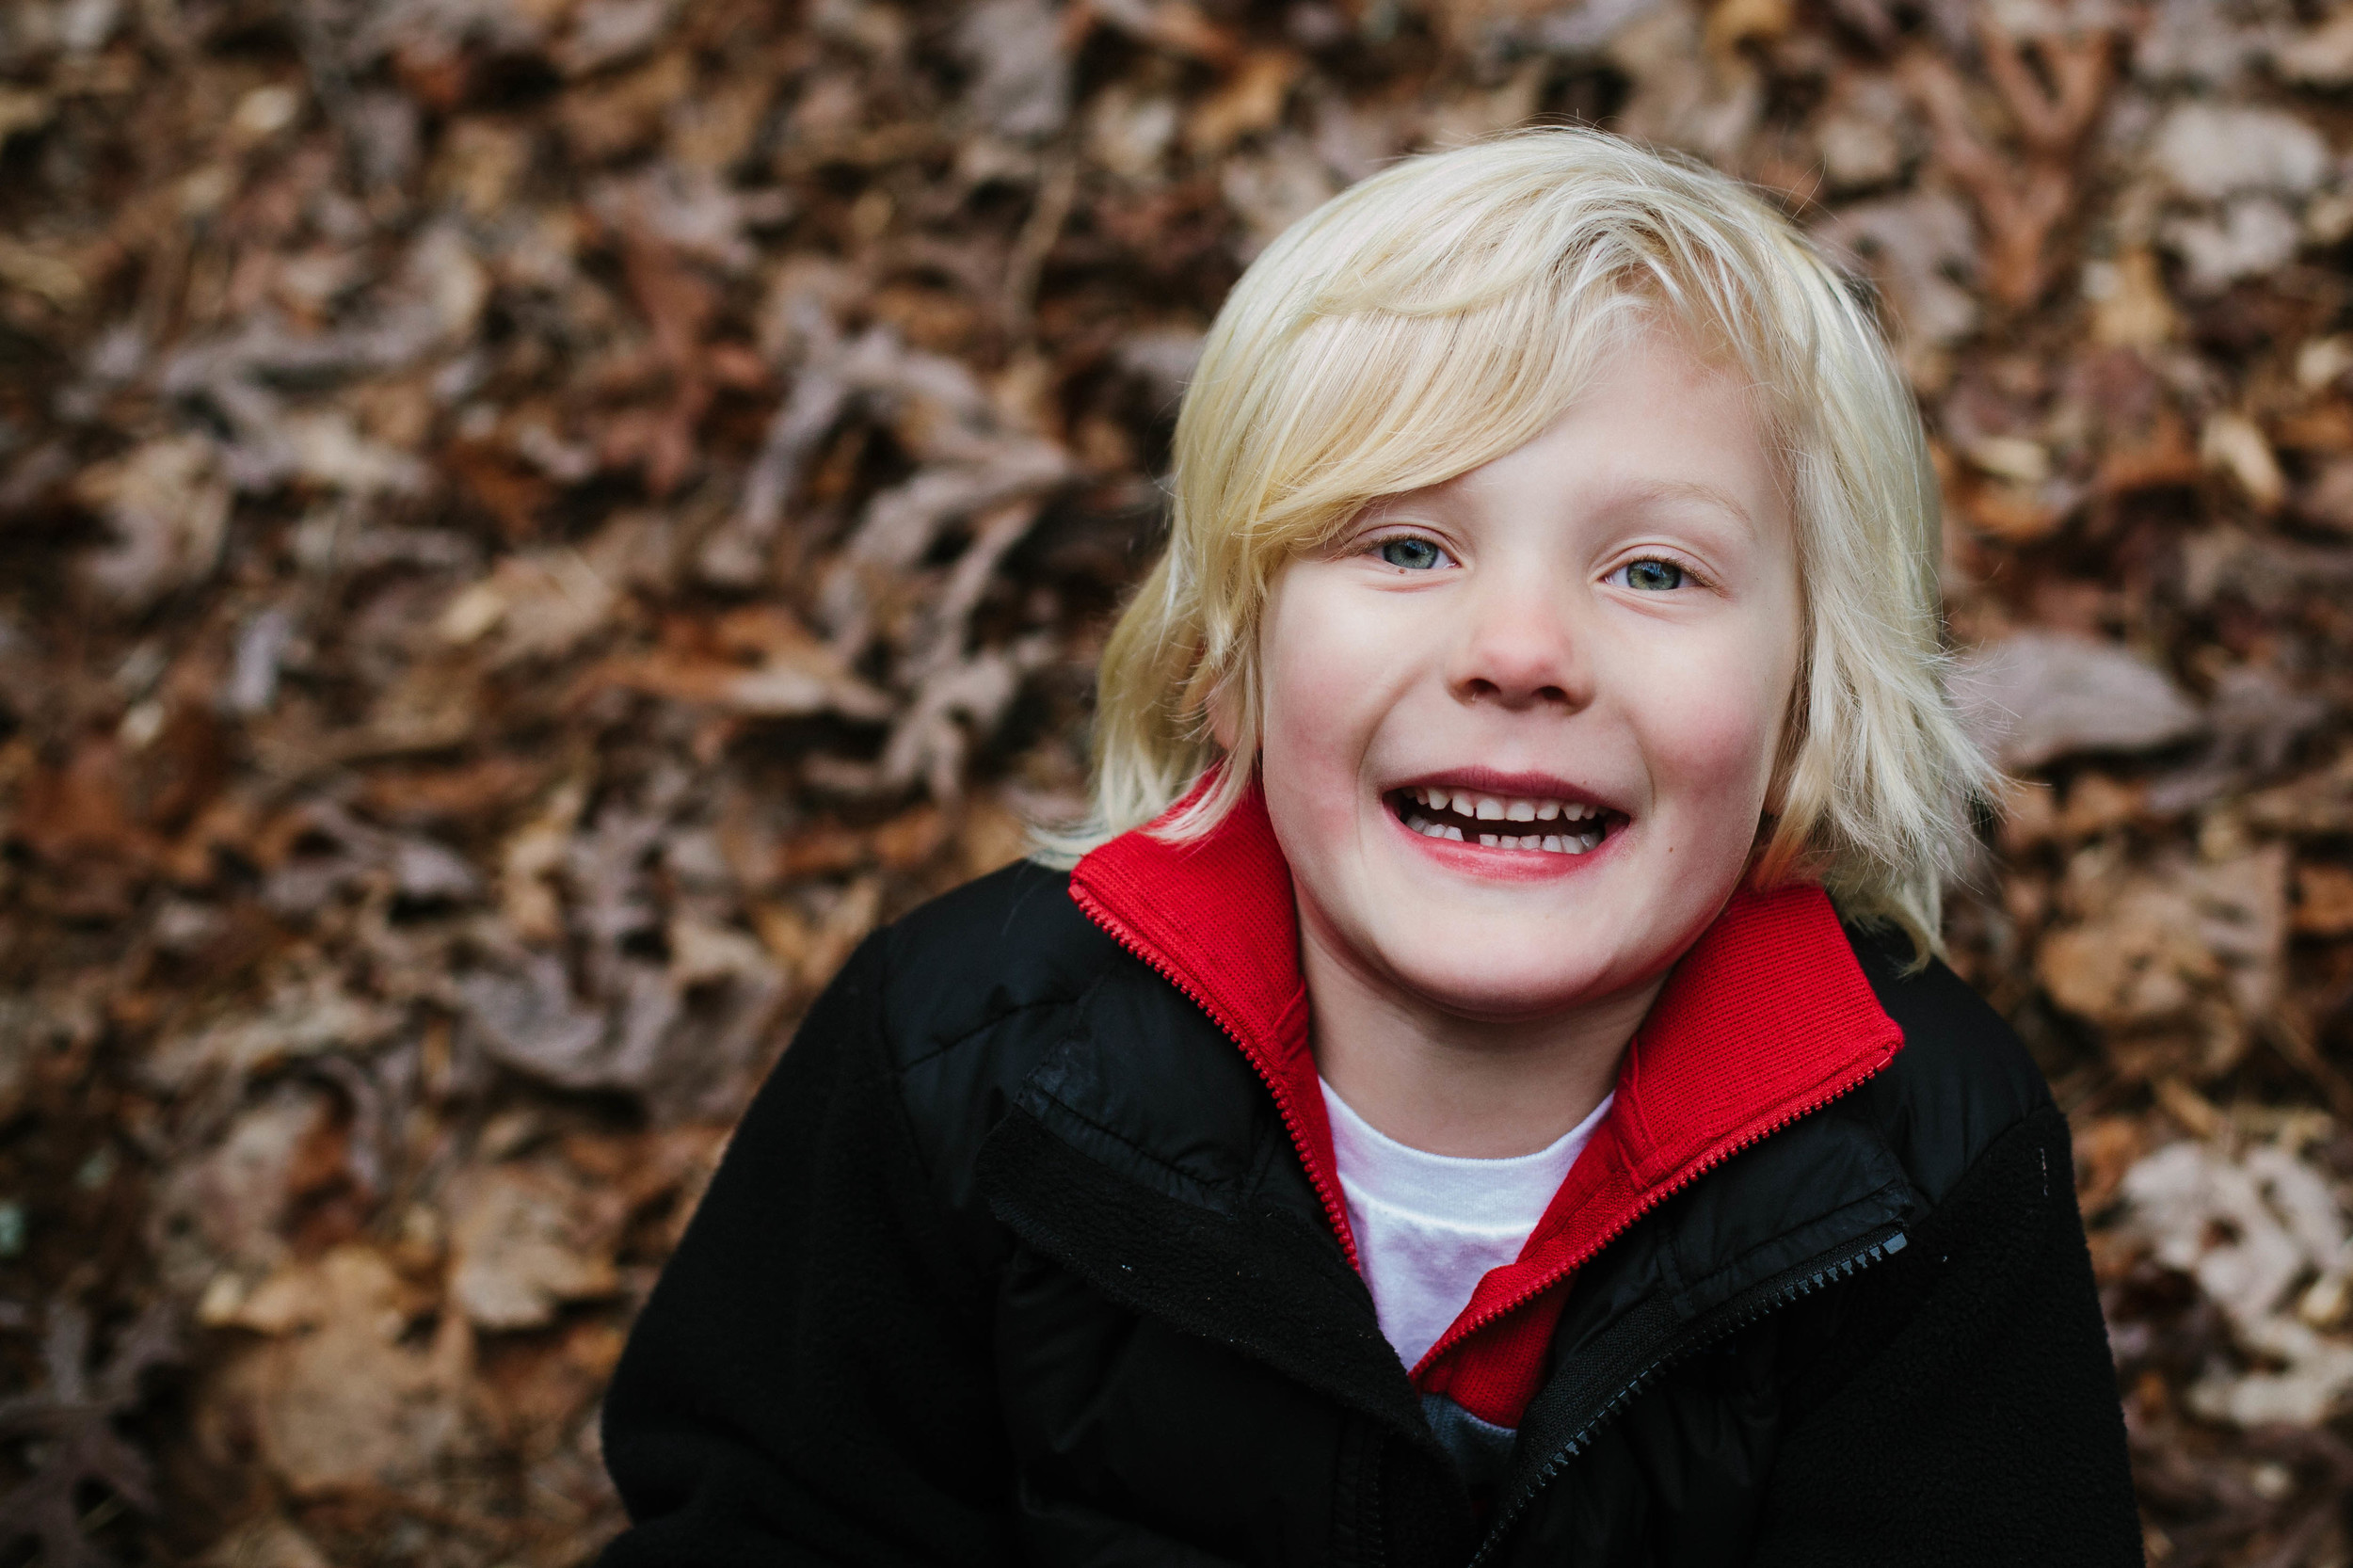 Image of boy smiling